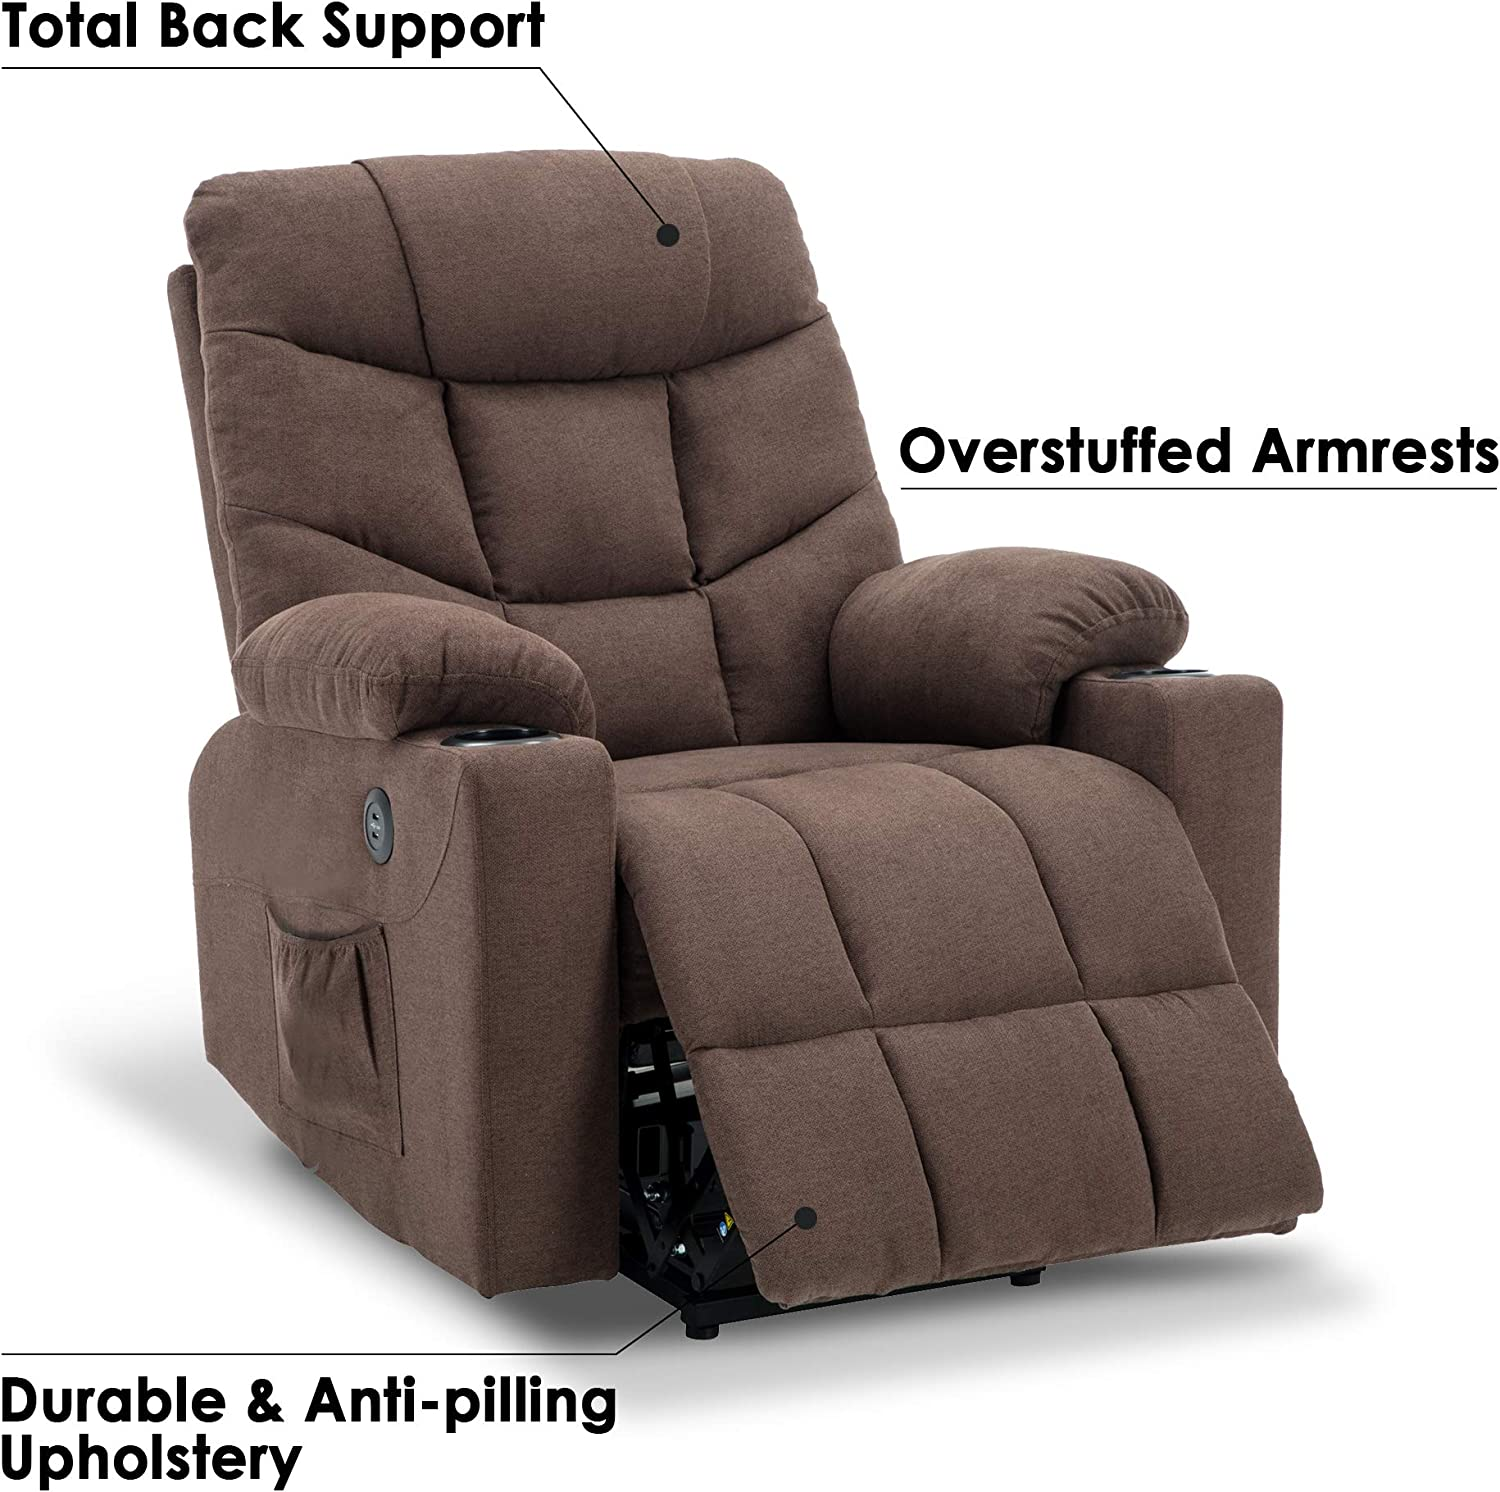 81lt0bwy36L. AC SL1500 - What Are The Best Chairs For Back Pain At Home - ChairPicks